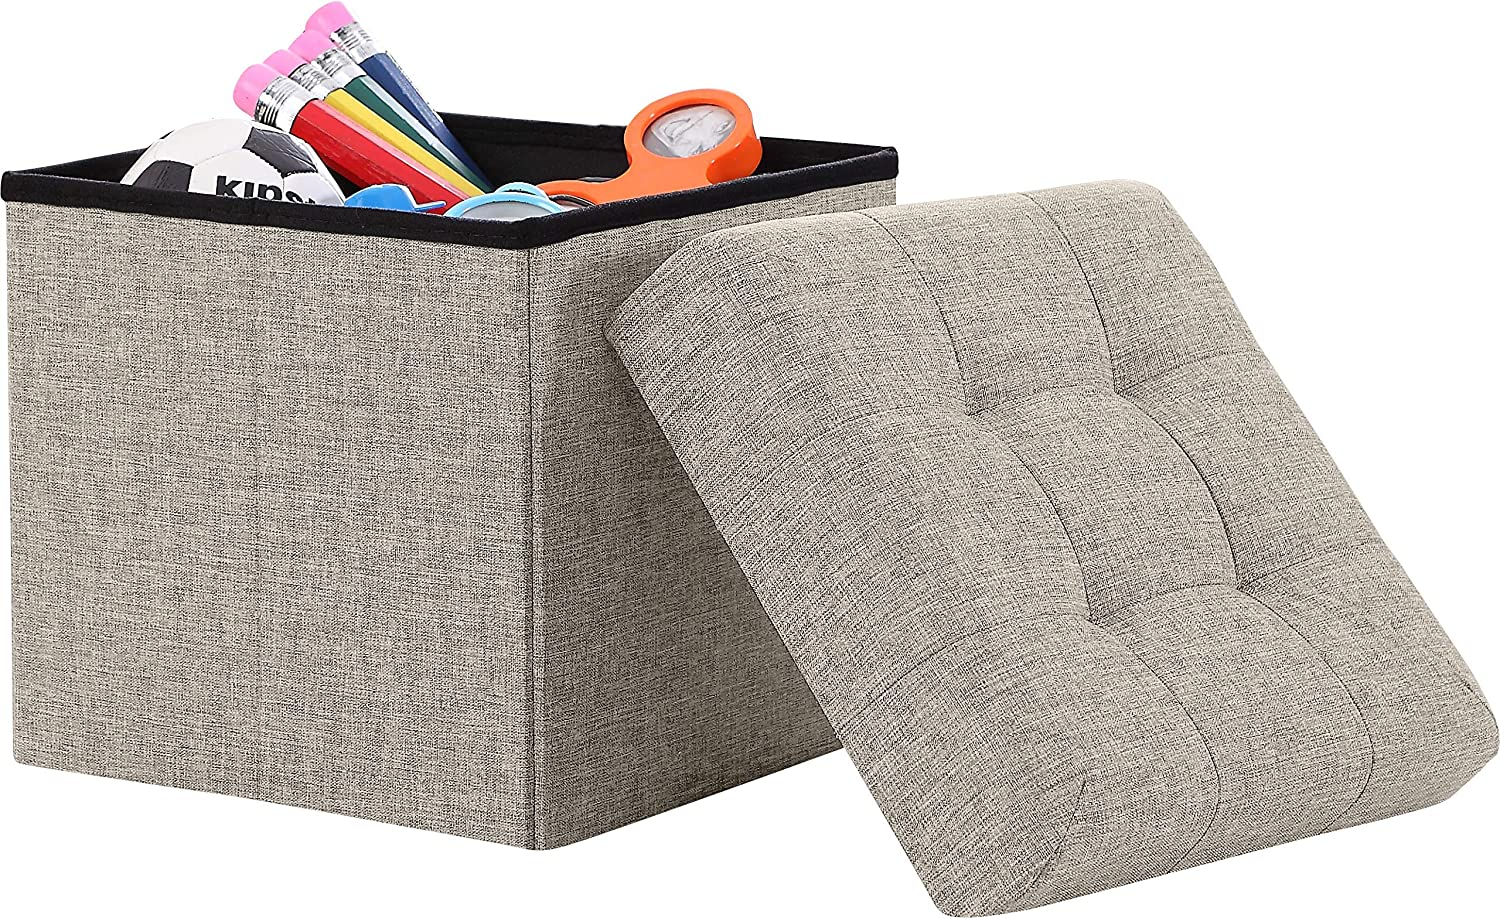 Ornavo Home Houston Mall Special price Foldable Tufted Linen Cube Ottoman Fo Storage Square